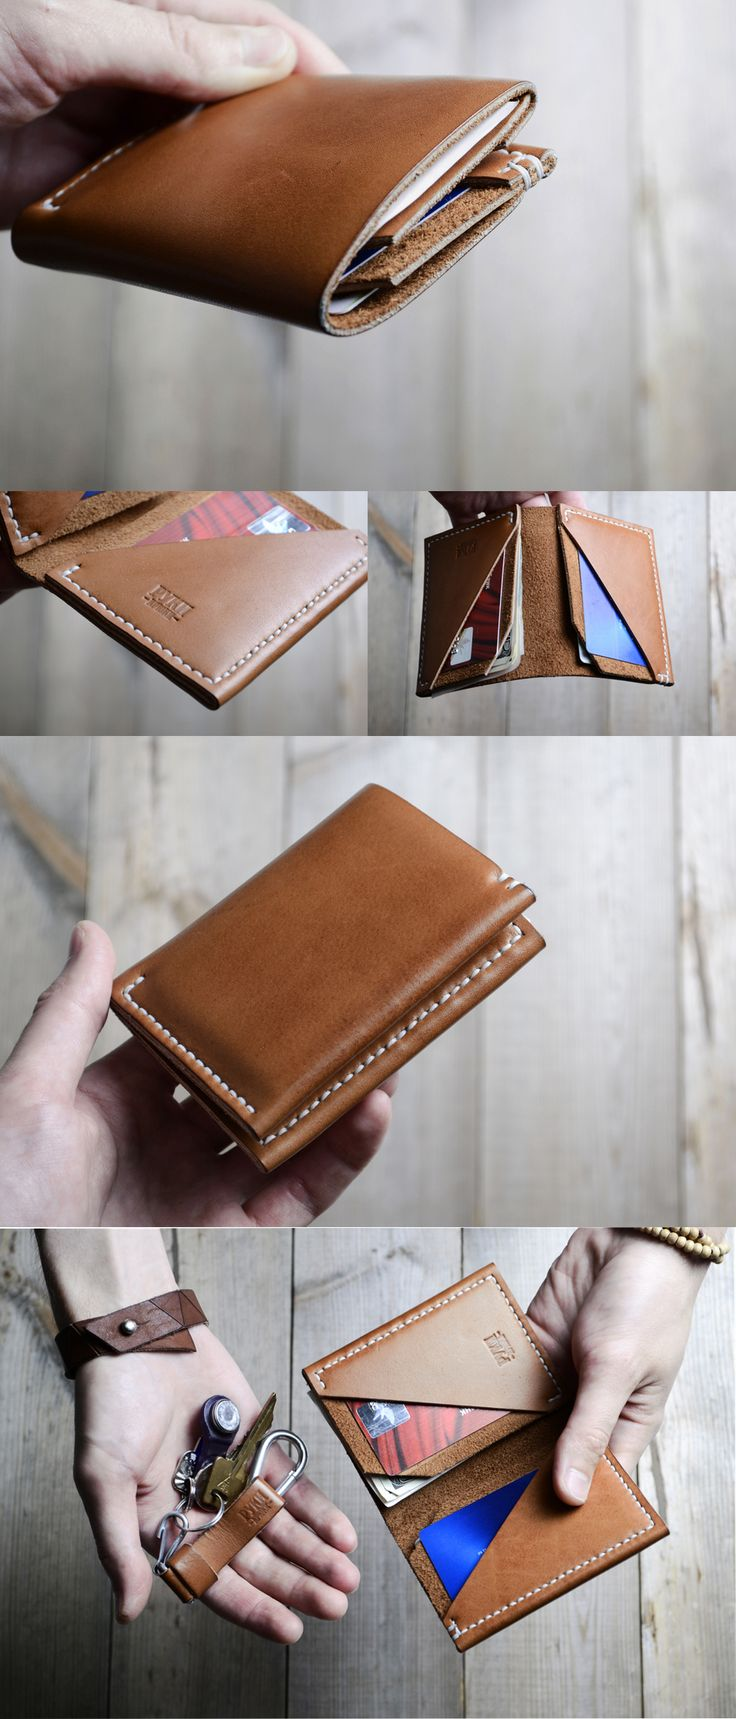 Wallet N4 in use https://www.etsy.com/listing/159802852/wallet-n4-natural-waxed-mink-oil